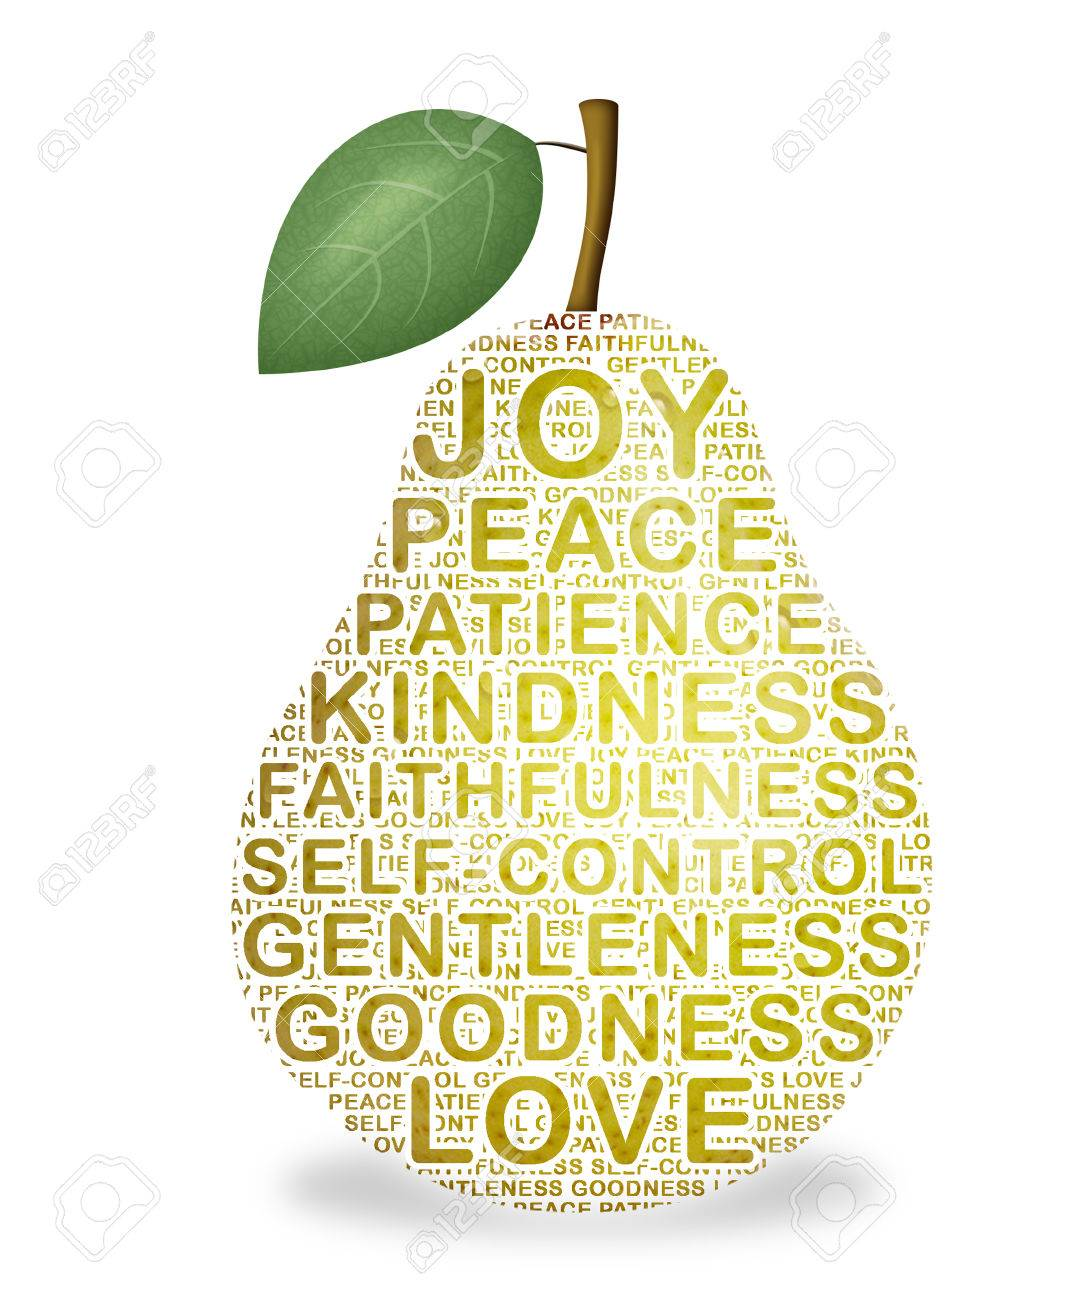 Pear representing the fruit of the Holy Spirit. - 34734554